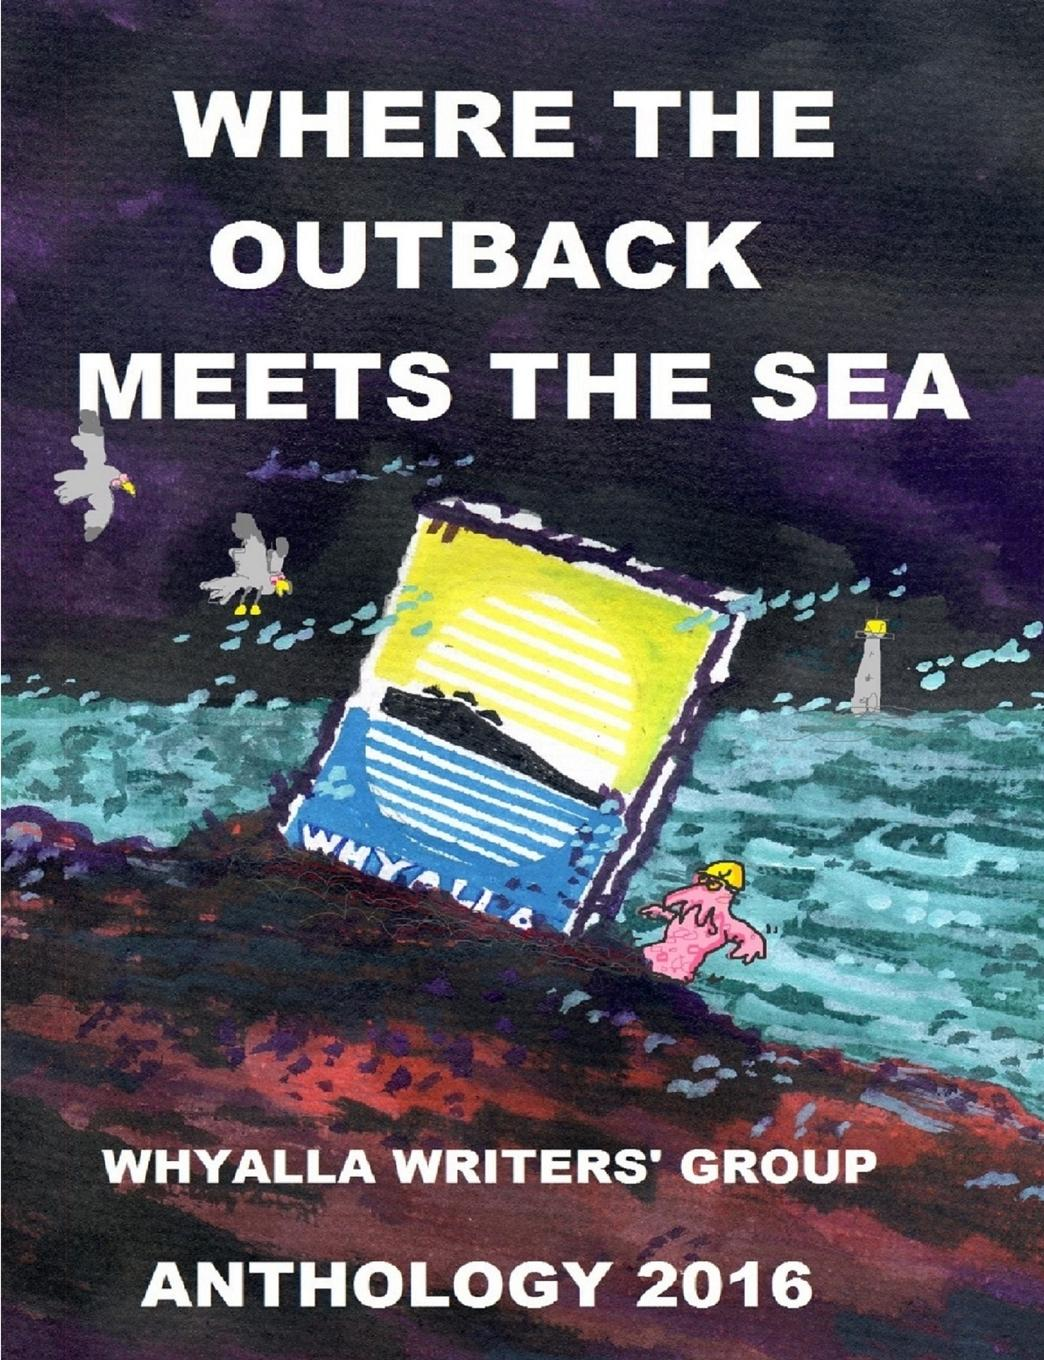 Whyalla Writers' Group where The Outback Meets The Sea